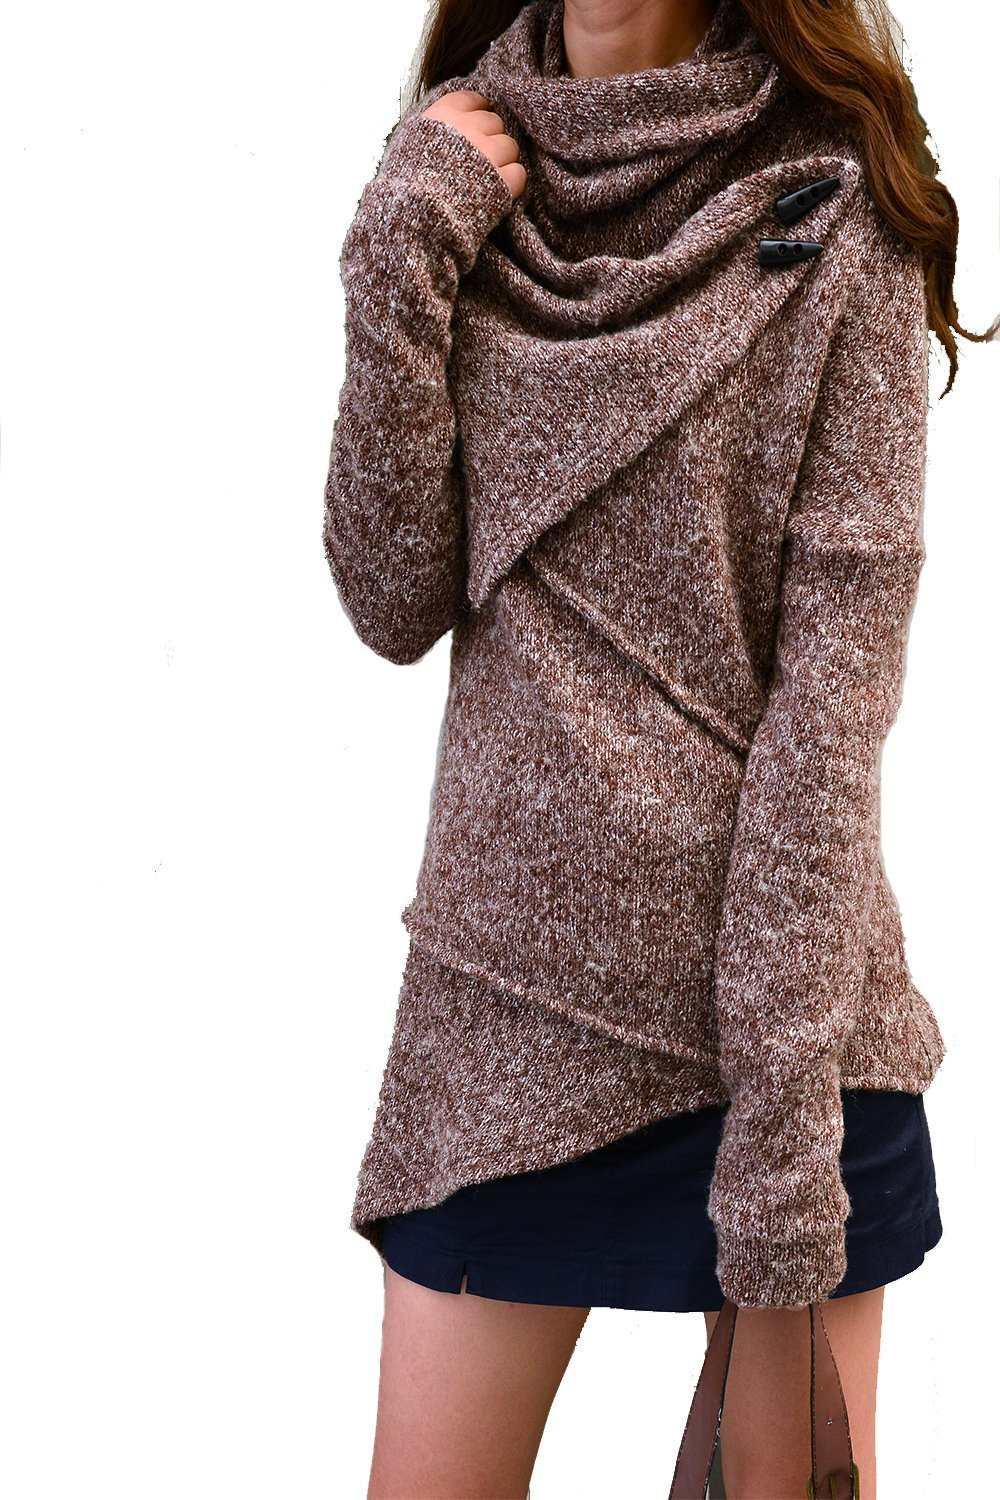 Women's Asymmetrical Knit Sweater Brown